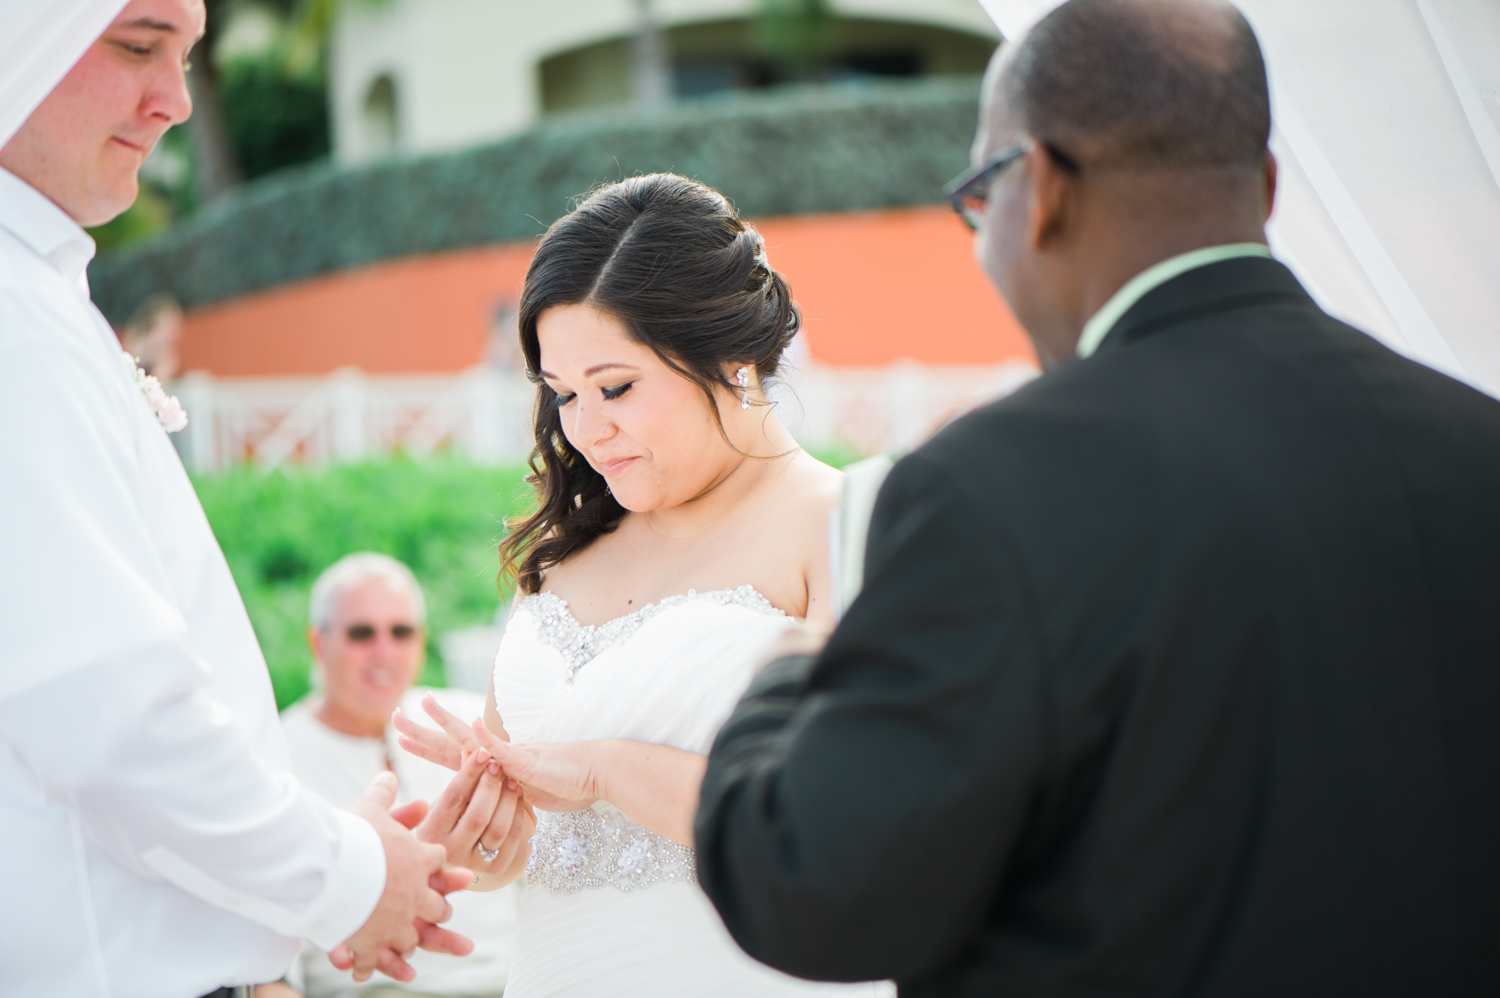 JadeandRyan-Montego-Bay-Jamaica-Wedding-Iberostar-Resort-Beach-58.jpg